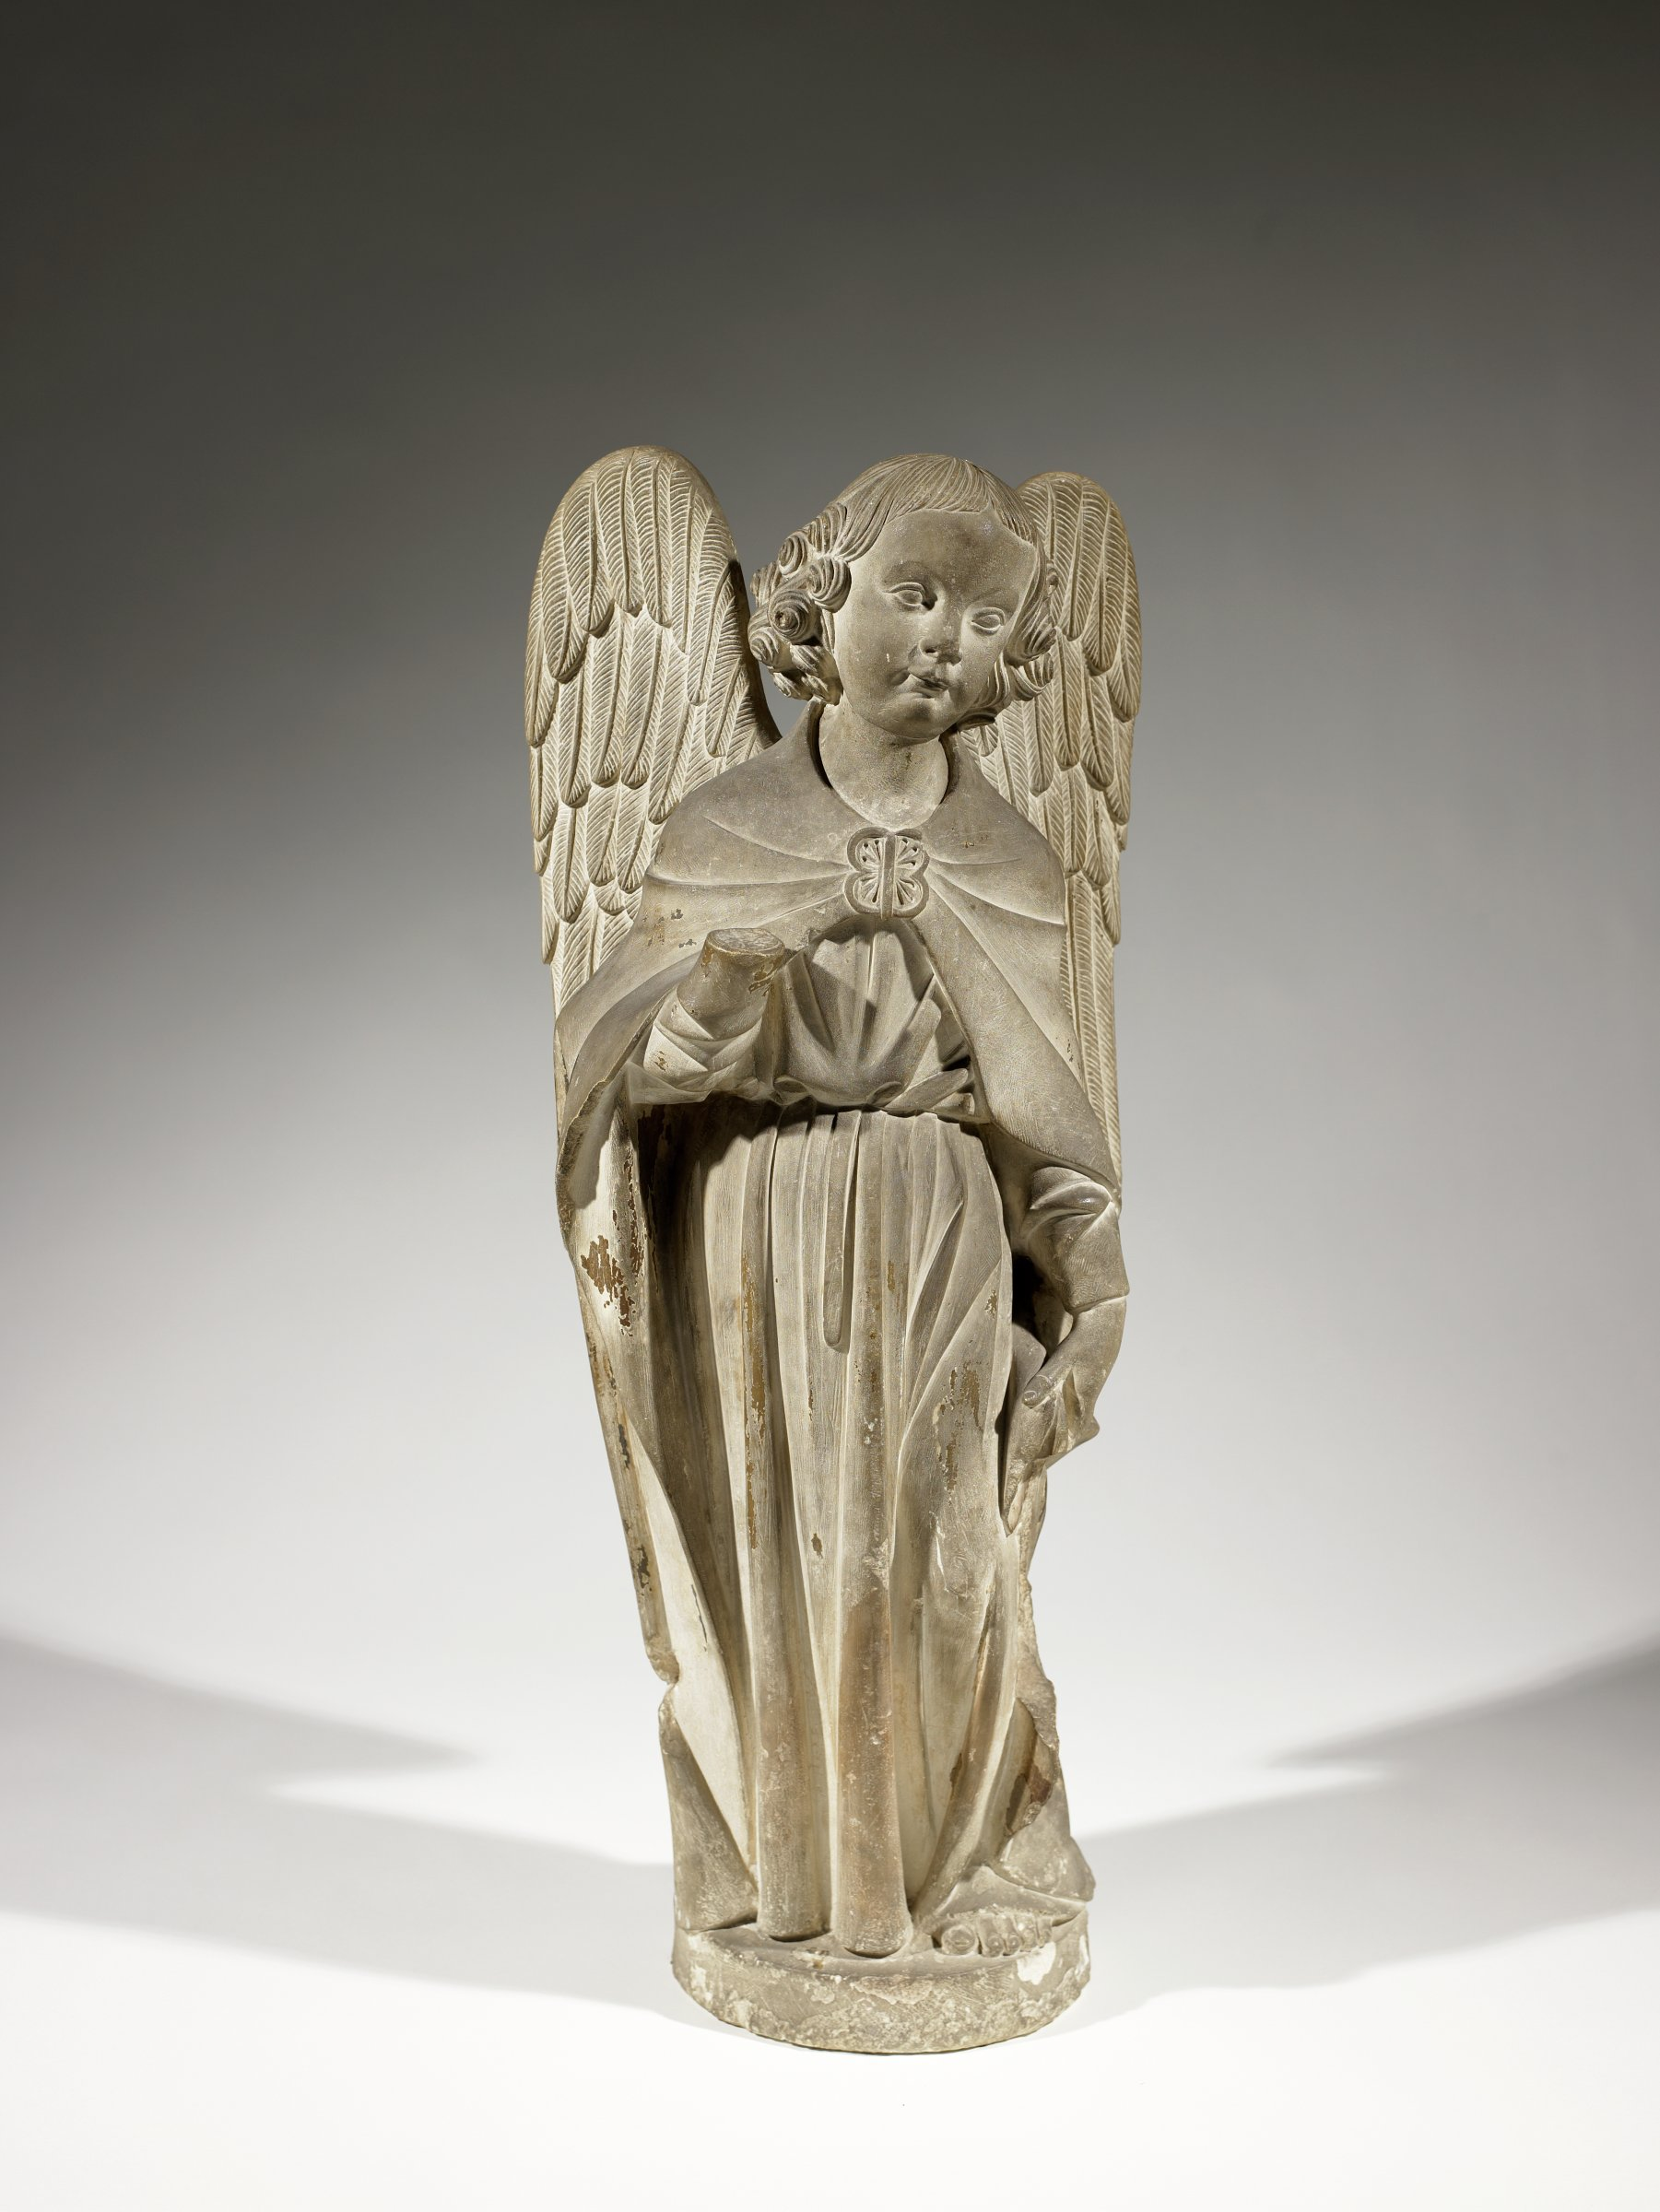 The winged angel is dressed in long robes, standing, and gesturing with its right arm, the hand of which is now missing.